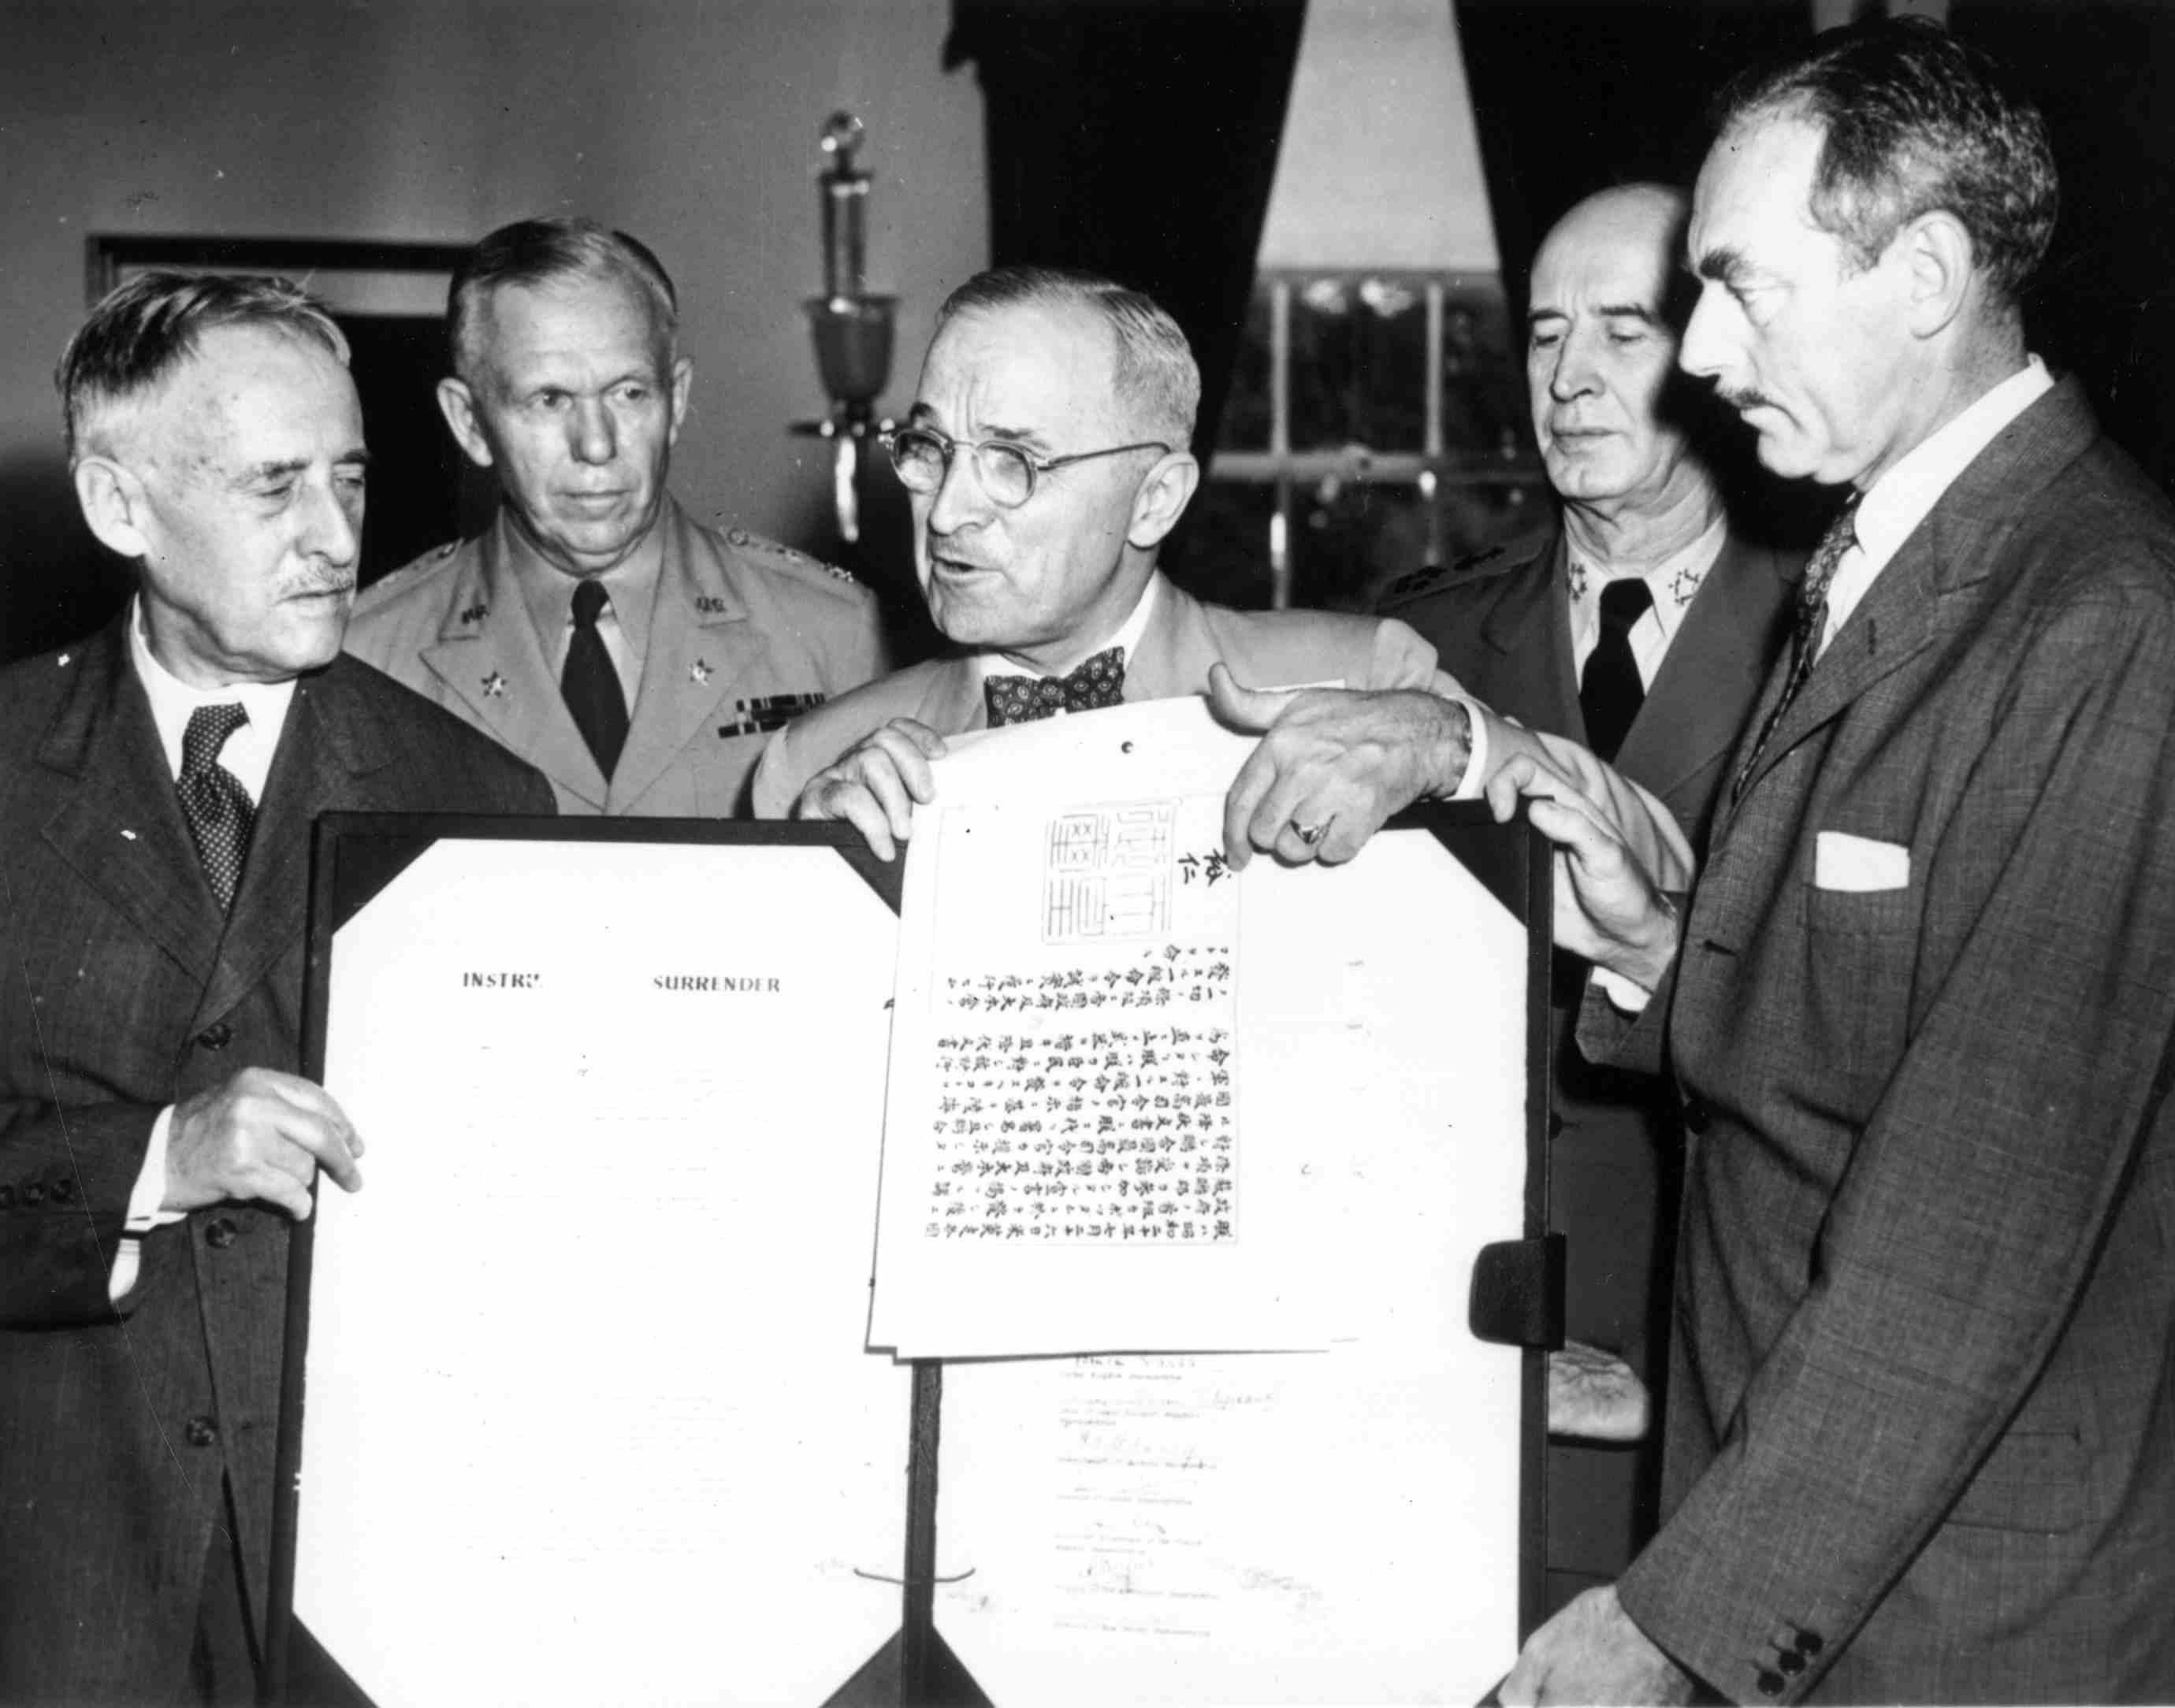 President Harry Truman with a group of men